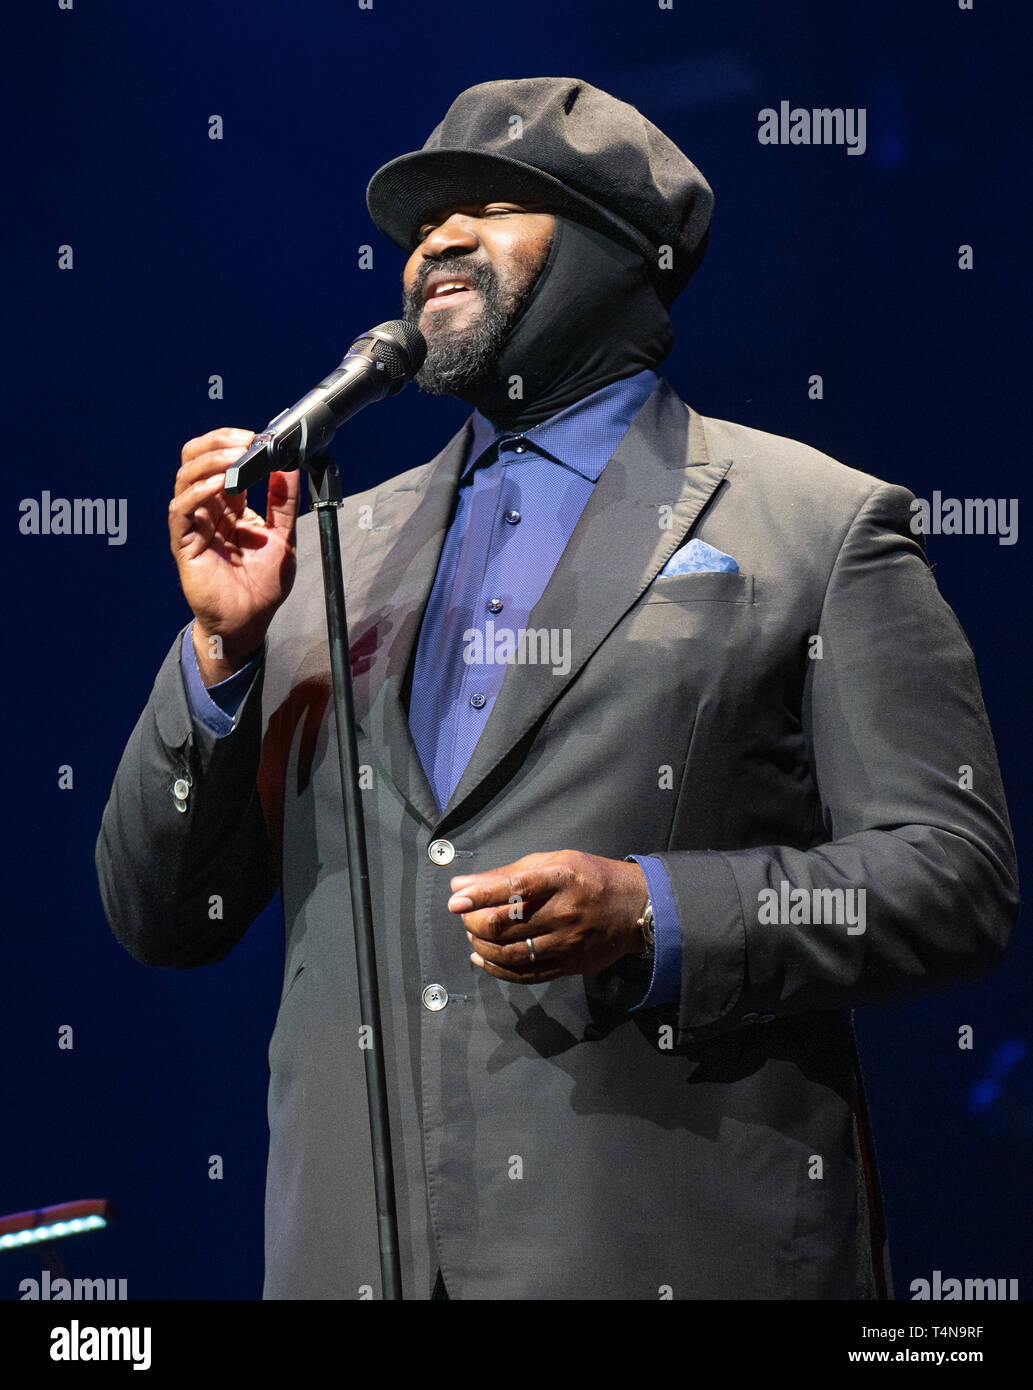 Frankfurt am Main, Germany - April 6th 2019: Gregory Porter (*1971, American jazz vocalist, songwriter, and actor) at Festhalle Frankfurt Stock Photo